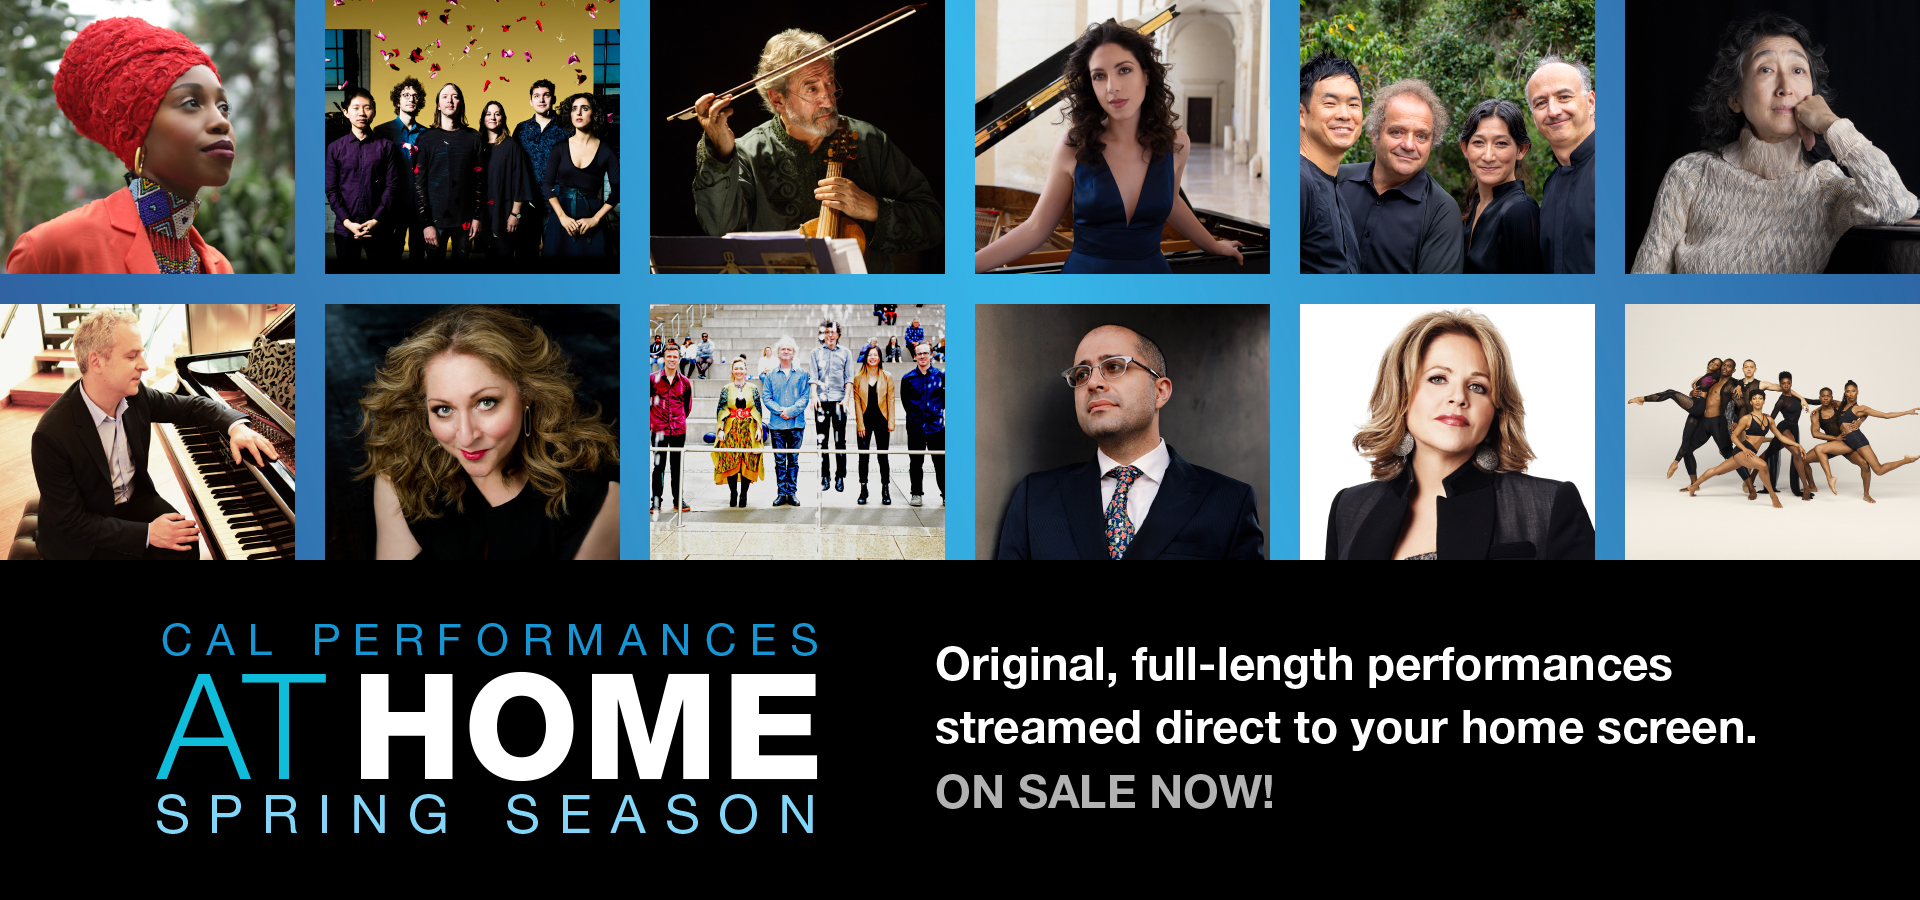 Cal Performances at Home: Spring Season. Original, full-length performances streamed direct to your home screen.